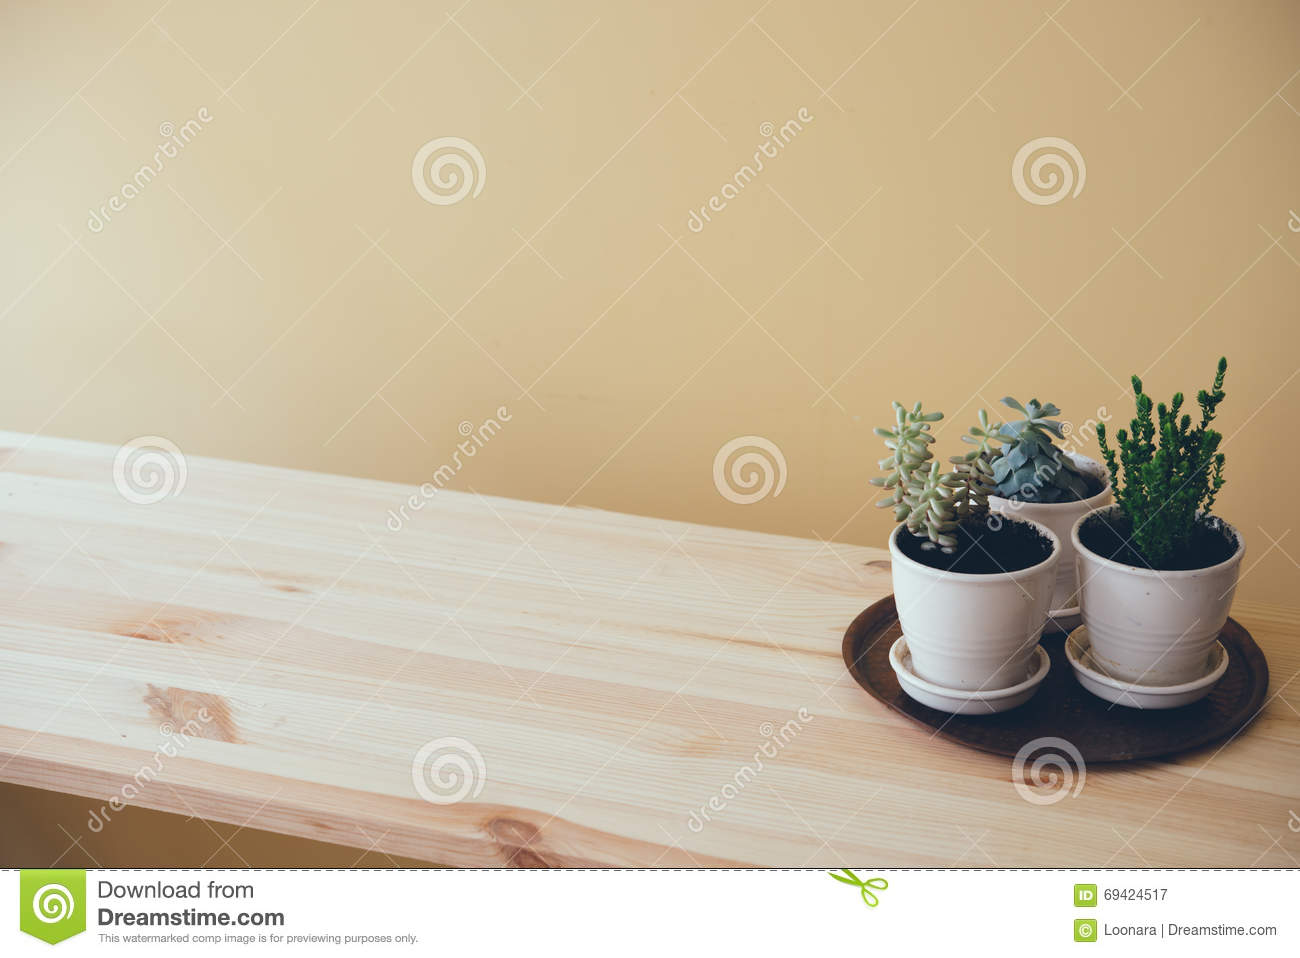 Green Plants On A Wooden Table Stock Image - Image of beige ...